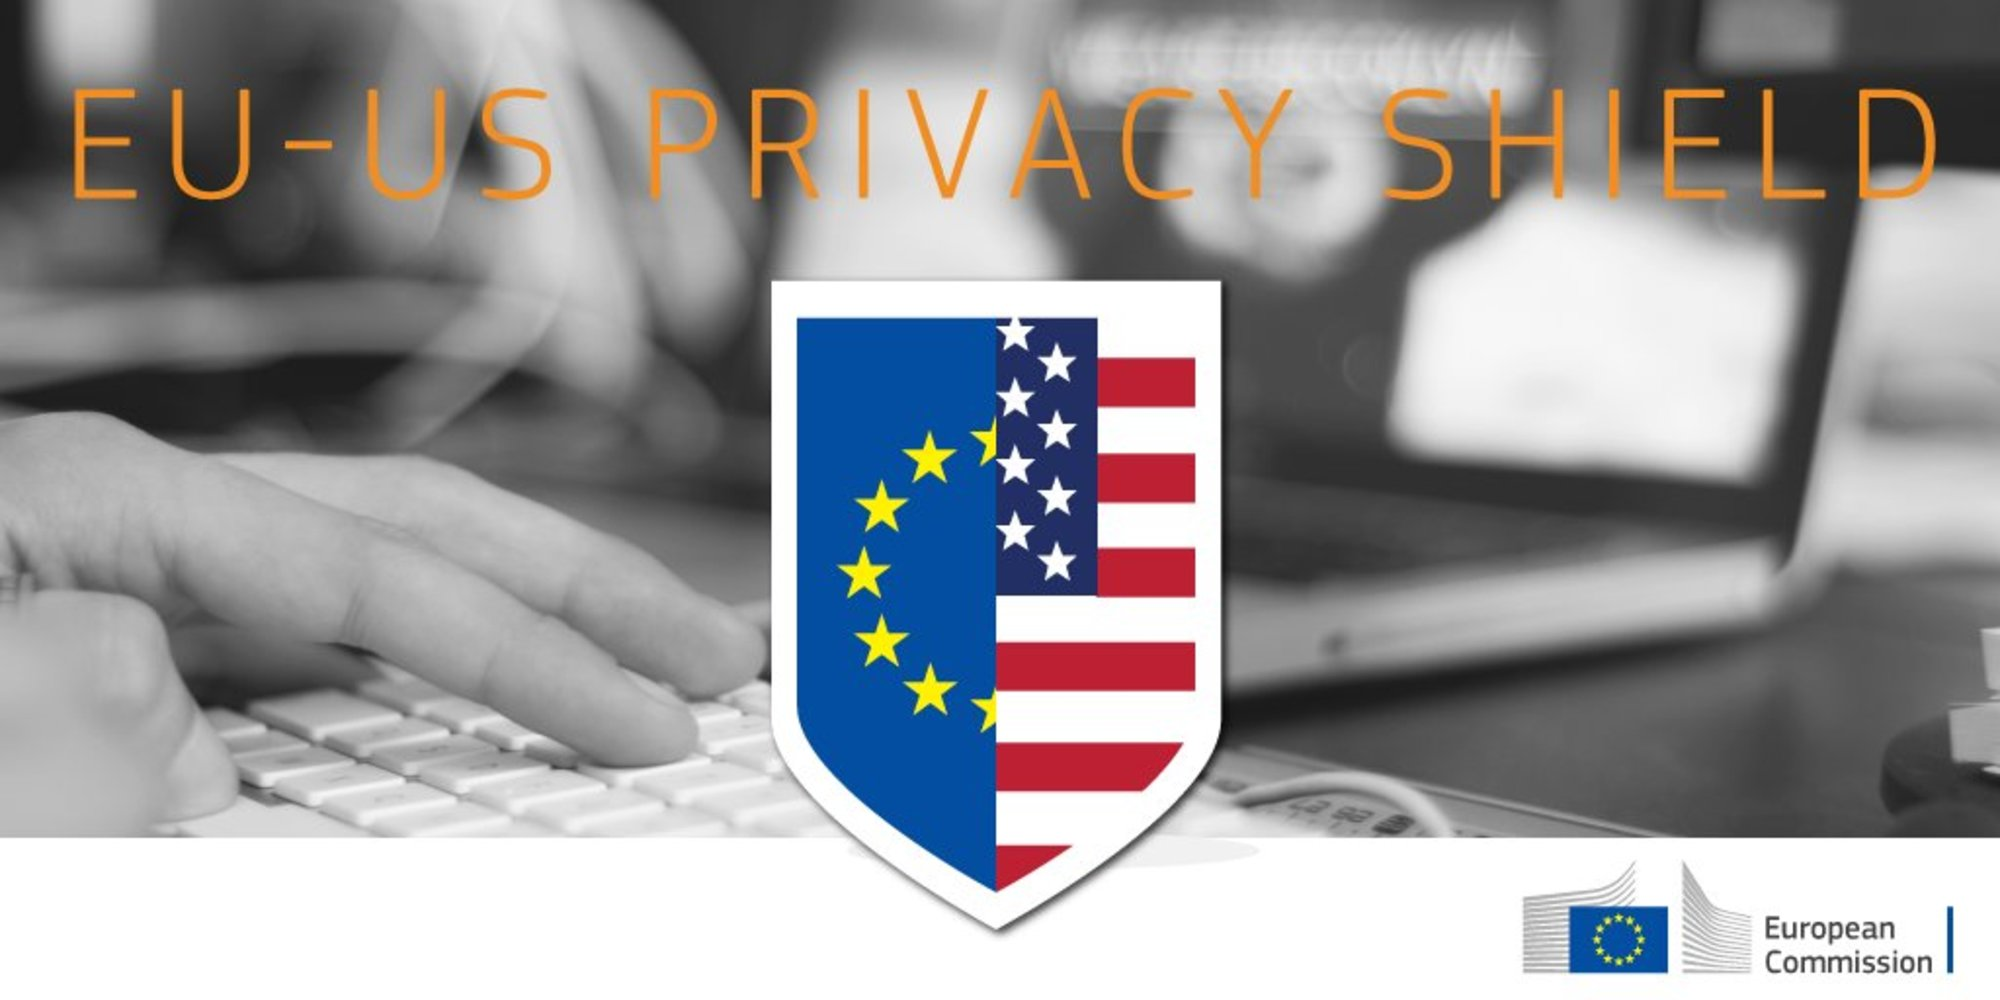 Privacy Shield (previously known as Safe Harbor)